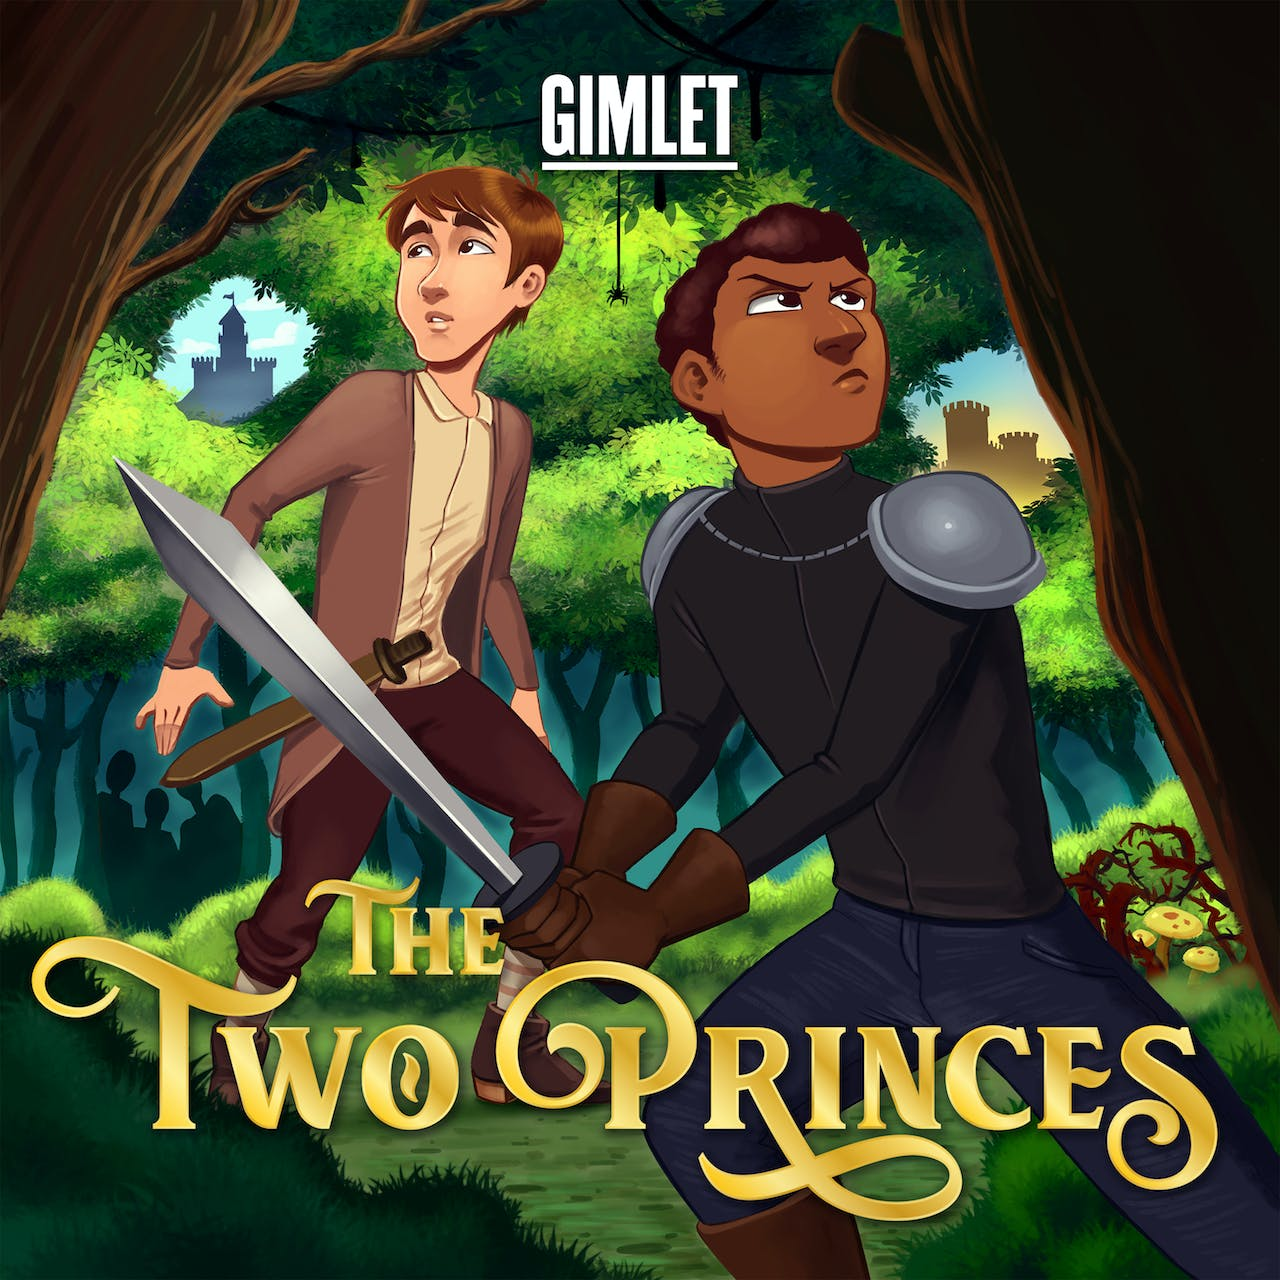 Introducing: The Two Princes